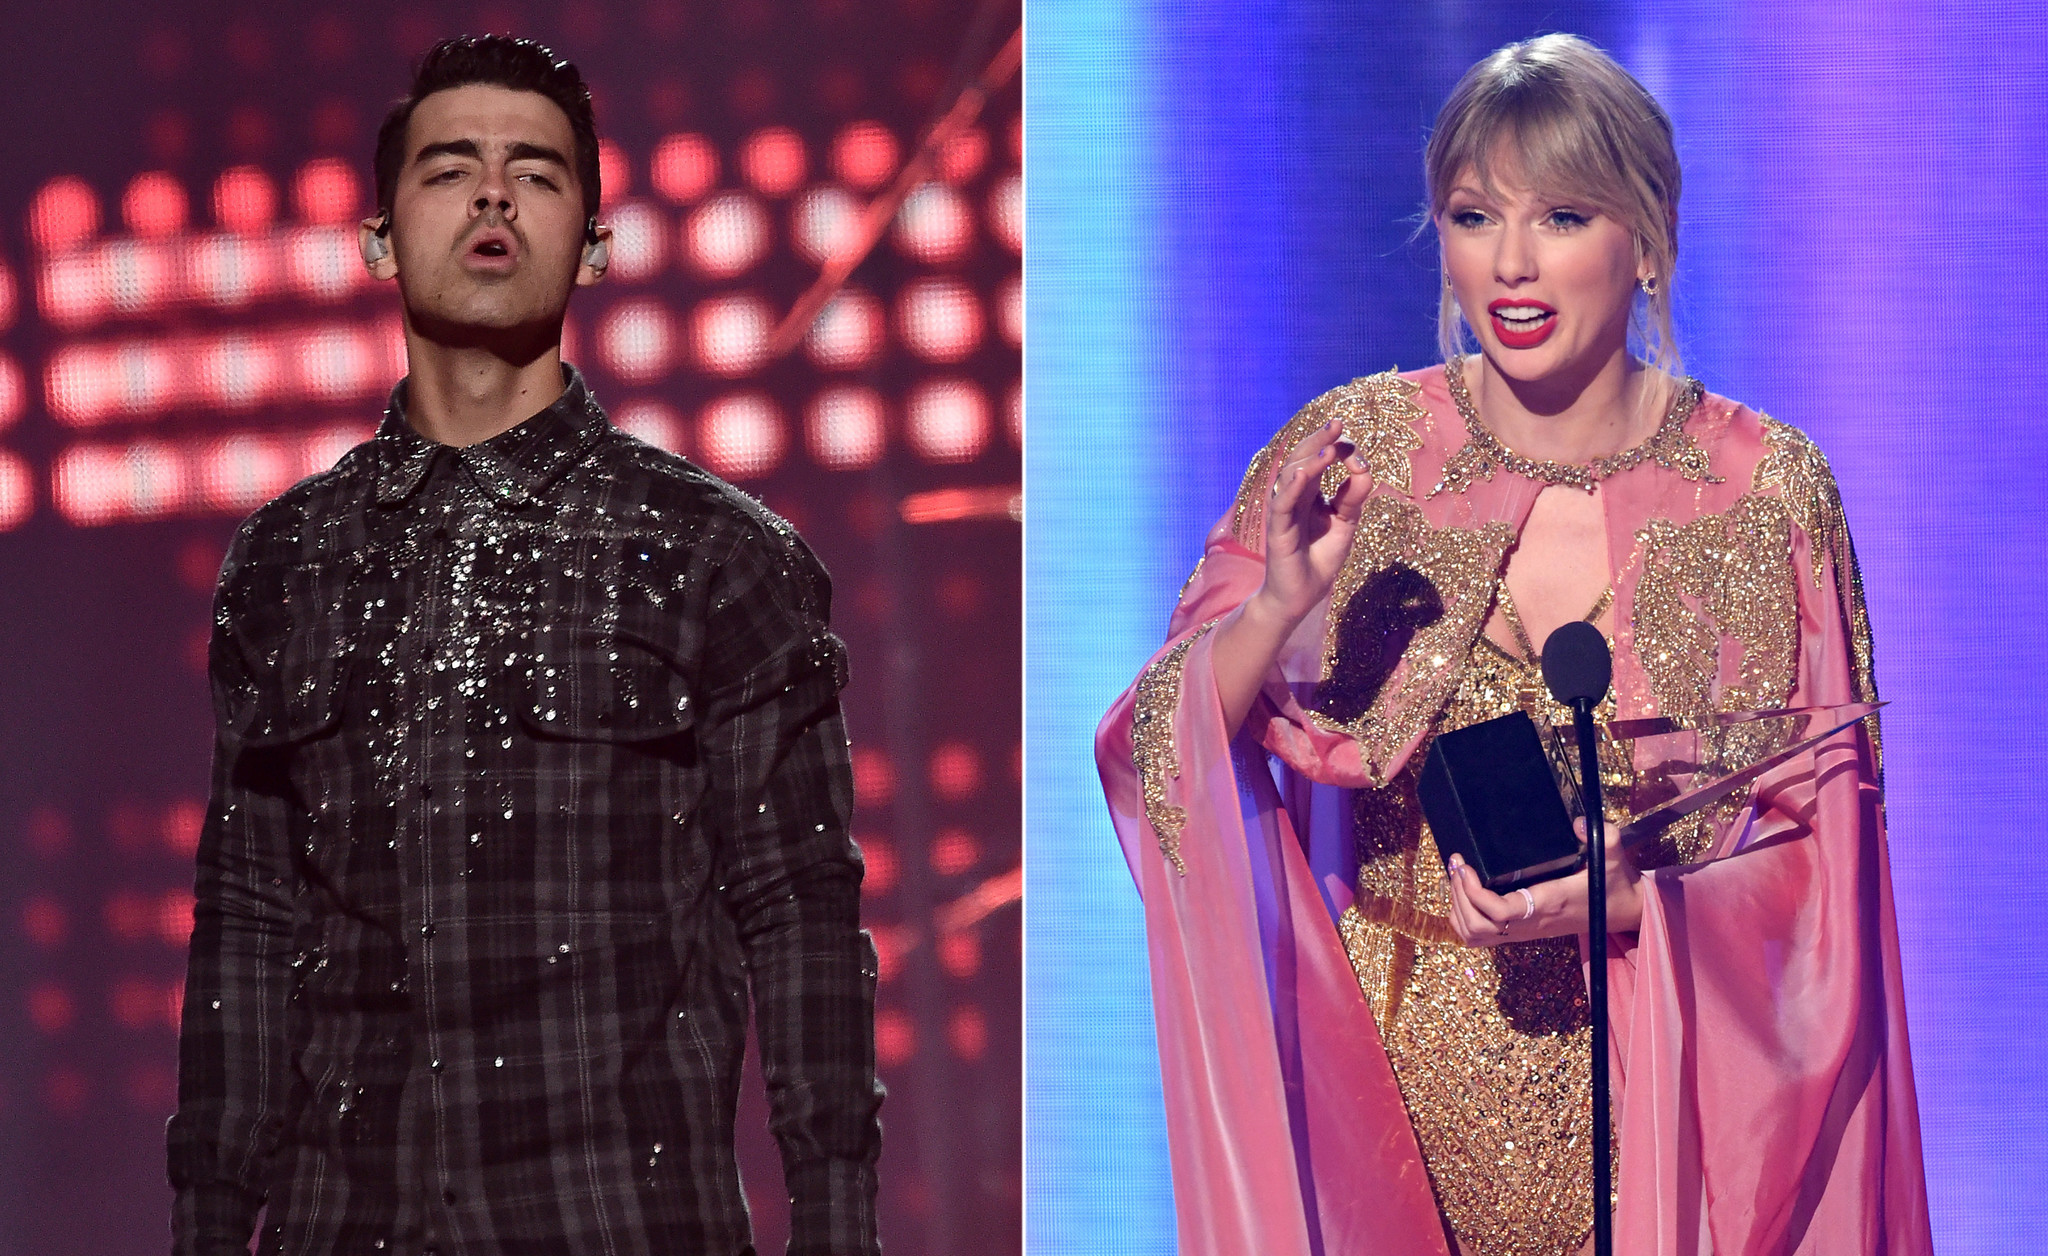 Joe Jonas covers ex Taylor Swift's song 'Lover' with a ... fraternal twist